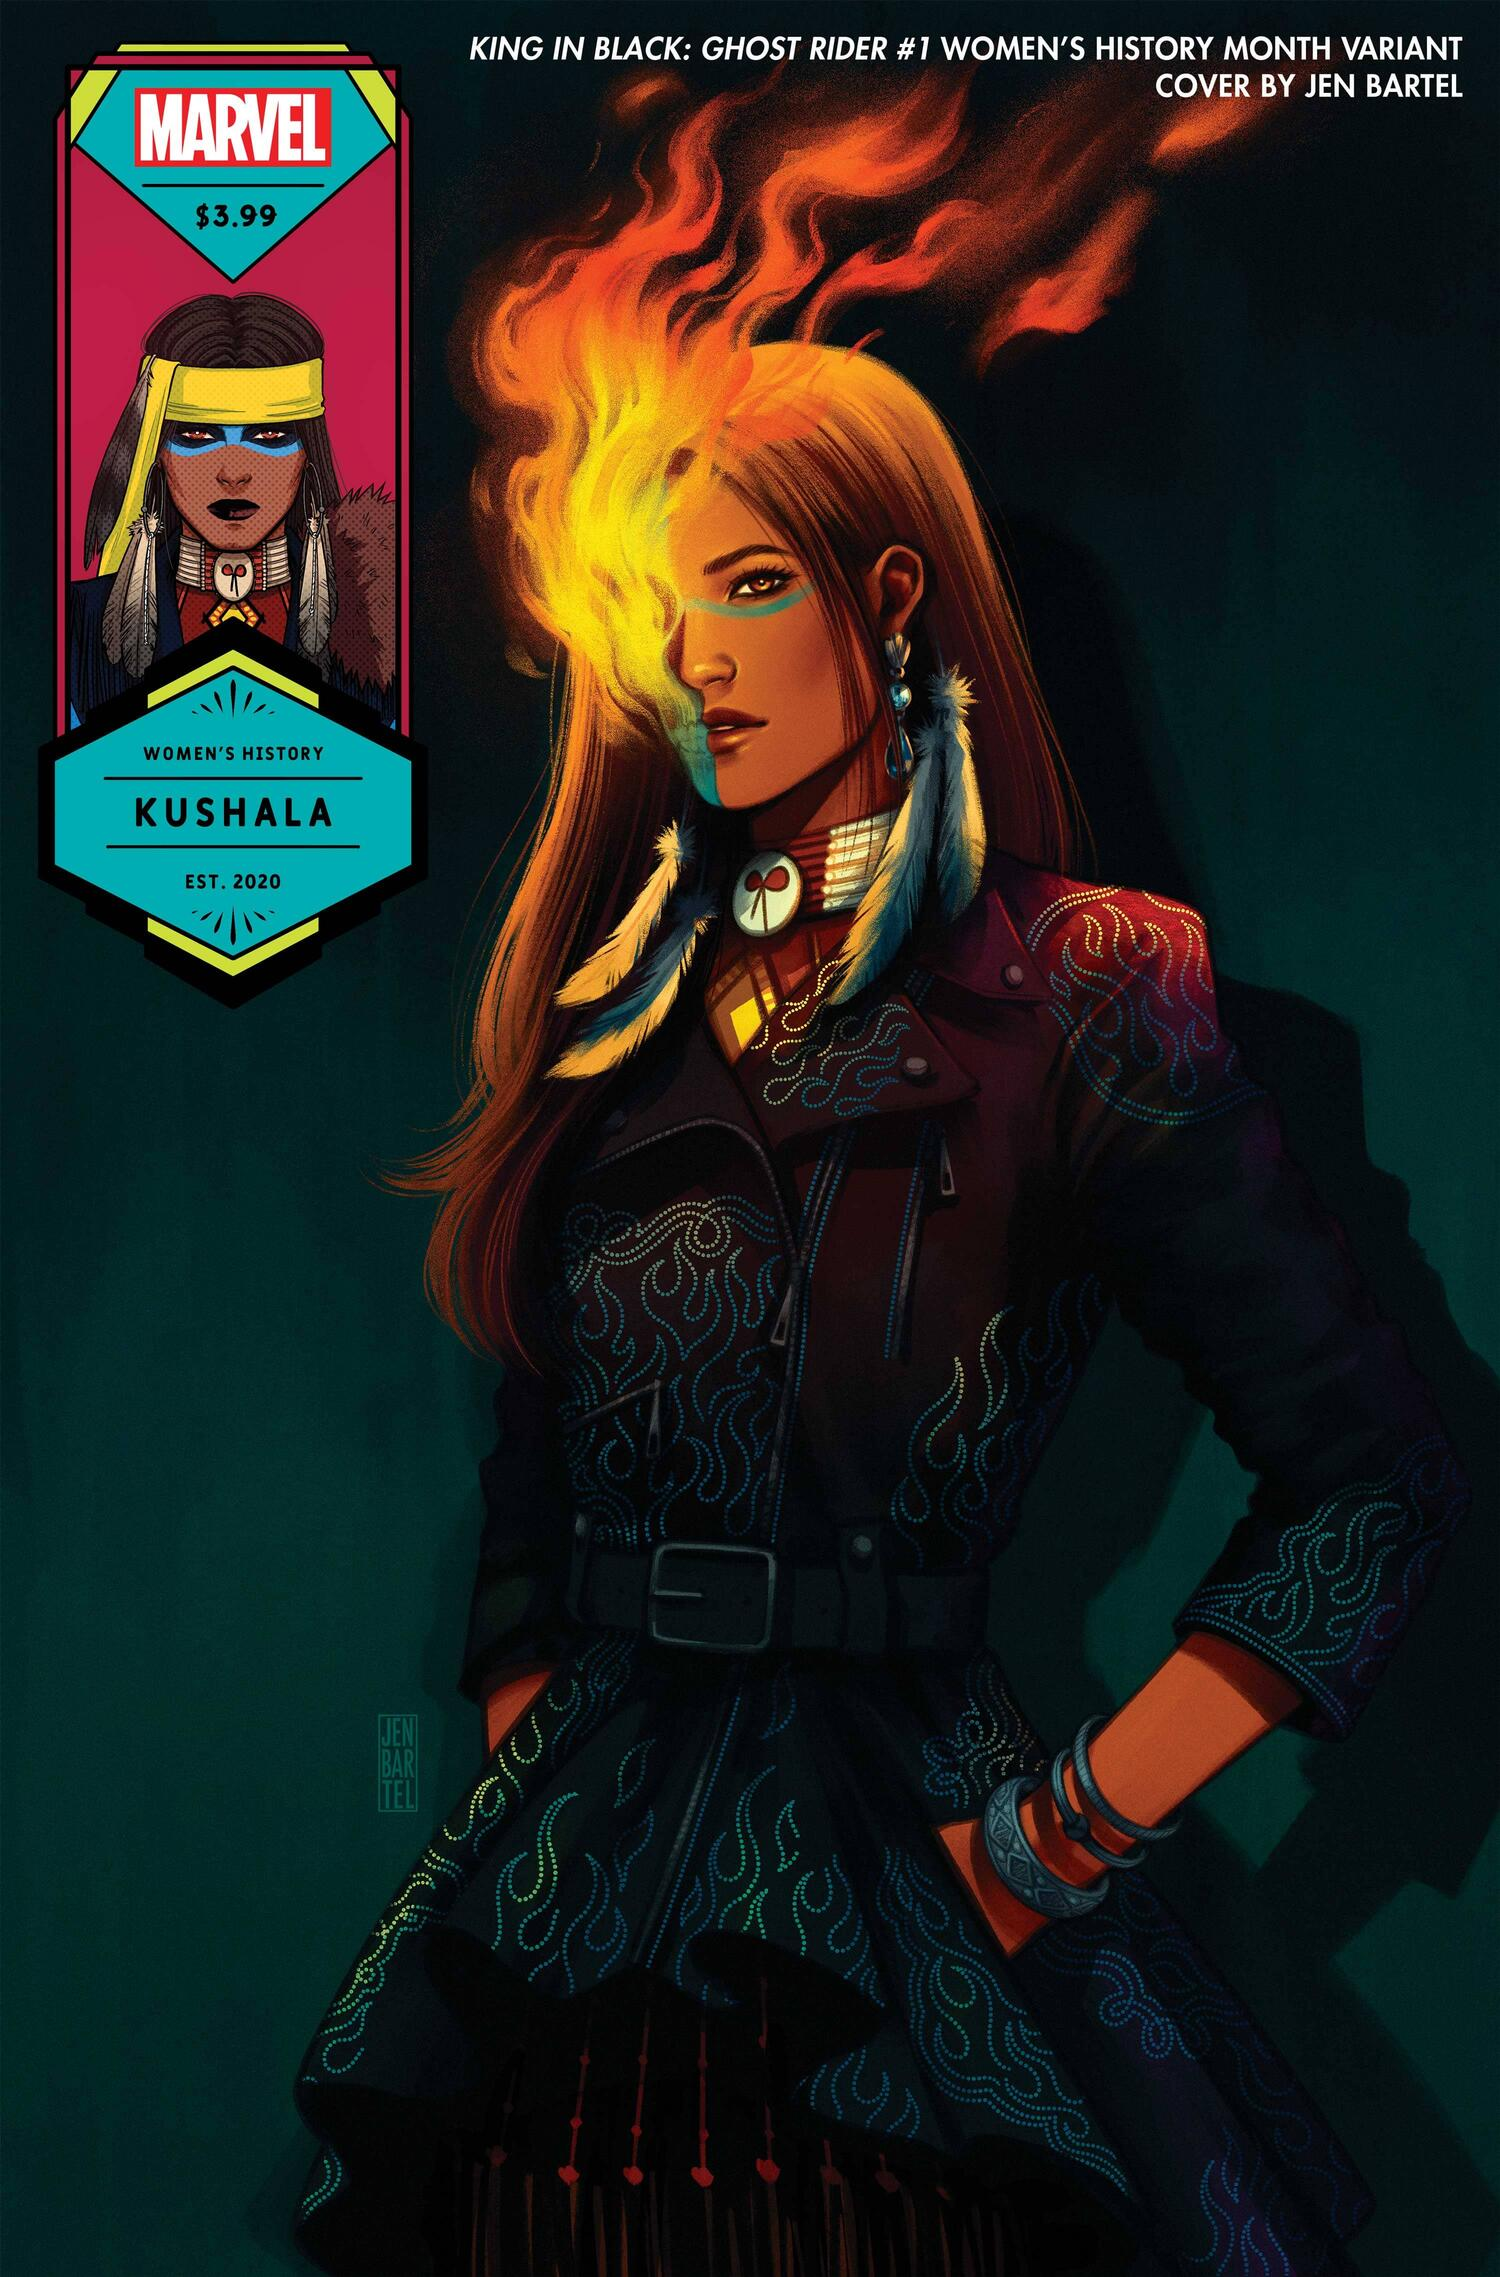 KING IN BLACK: GHOST RIDER #1 WOMEN'S HISTORY MONTH VARIANT COVER by JEN BARTEL